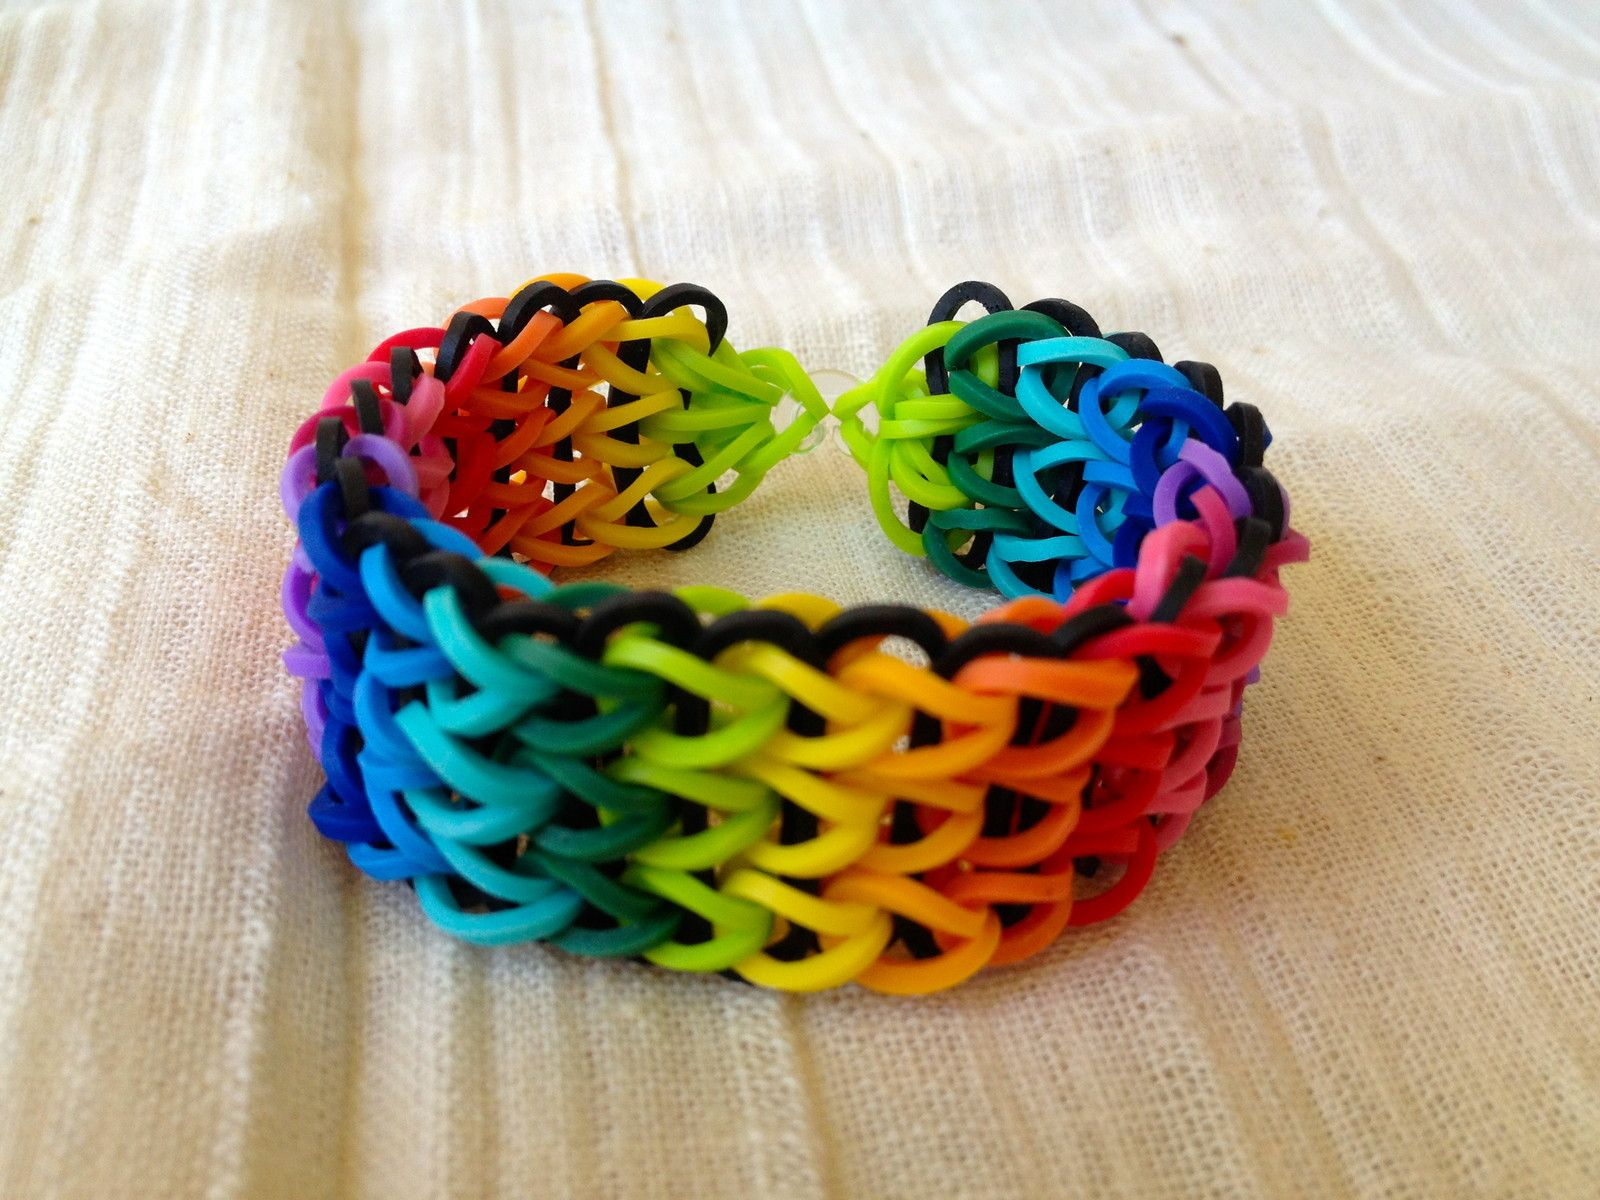 Pin by Sophie Lee on Rainbow Loom | Pinterest